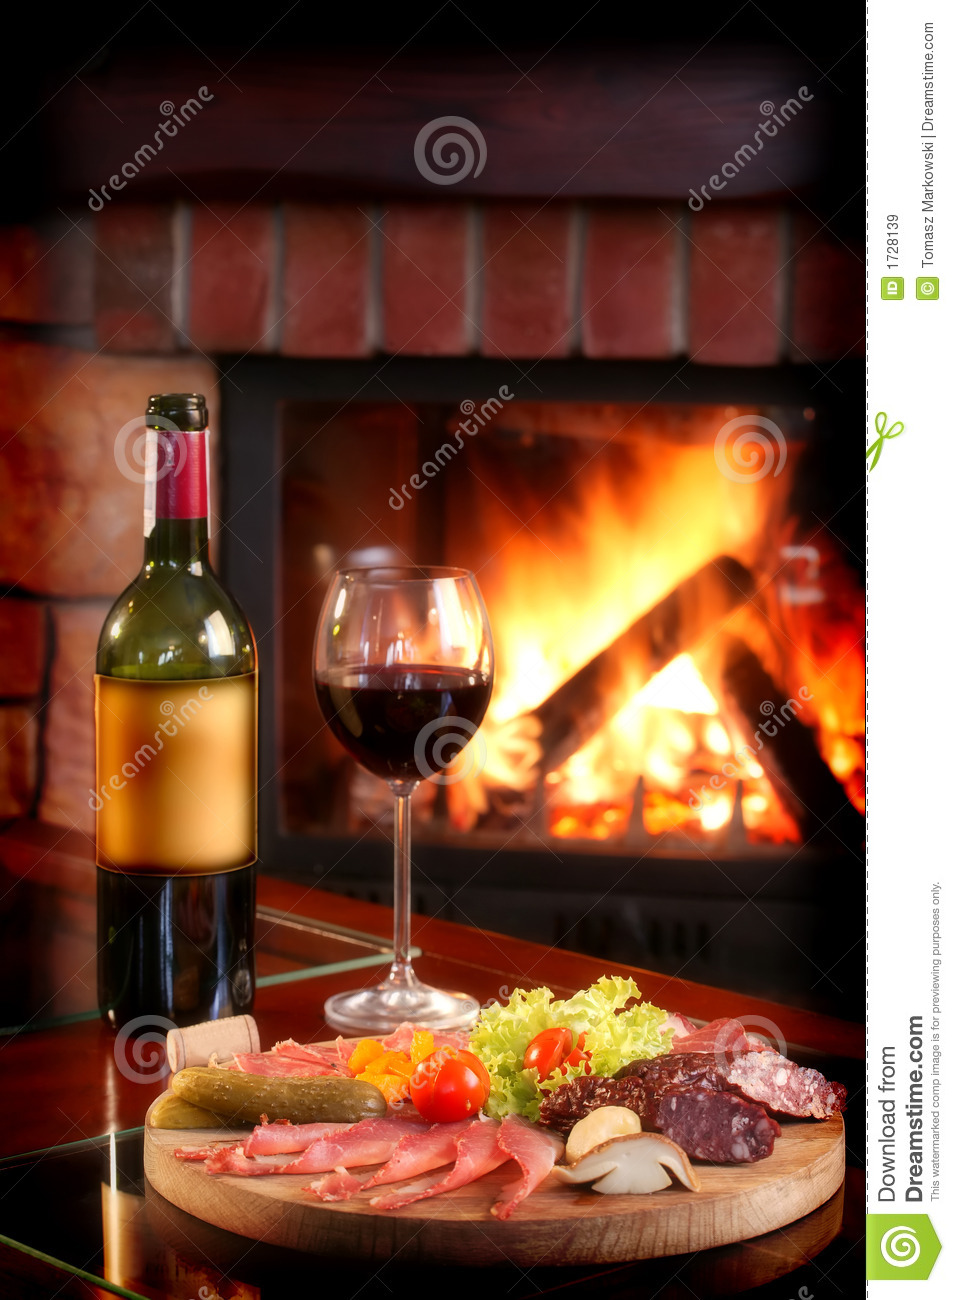 3d Virus Wallpaper Fireplace And Red Wine Royalty Free Stock Images Image